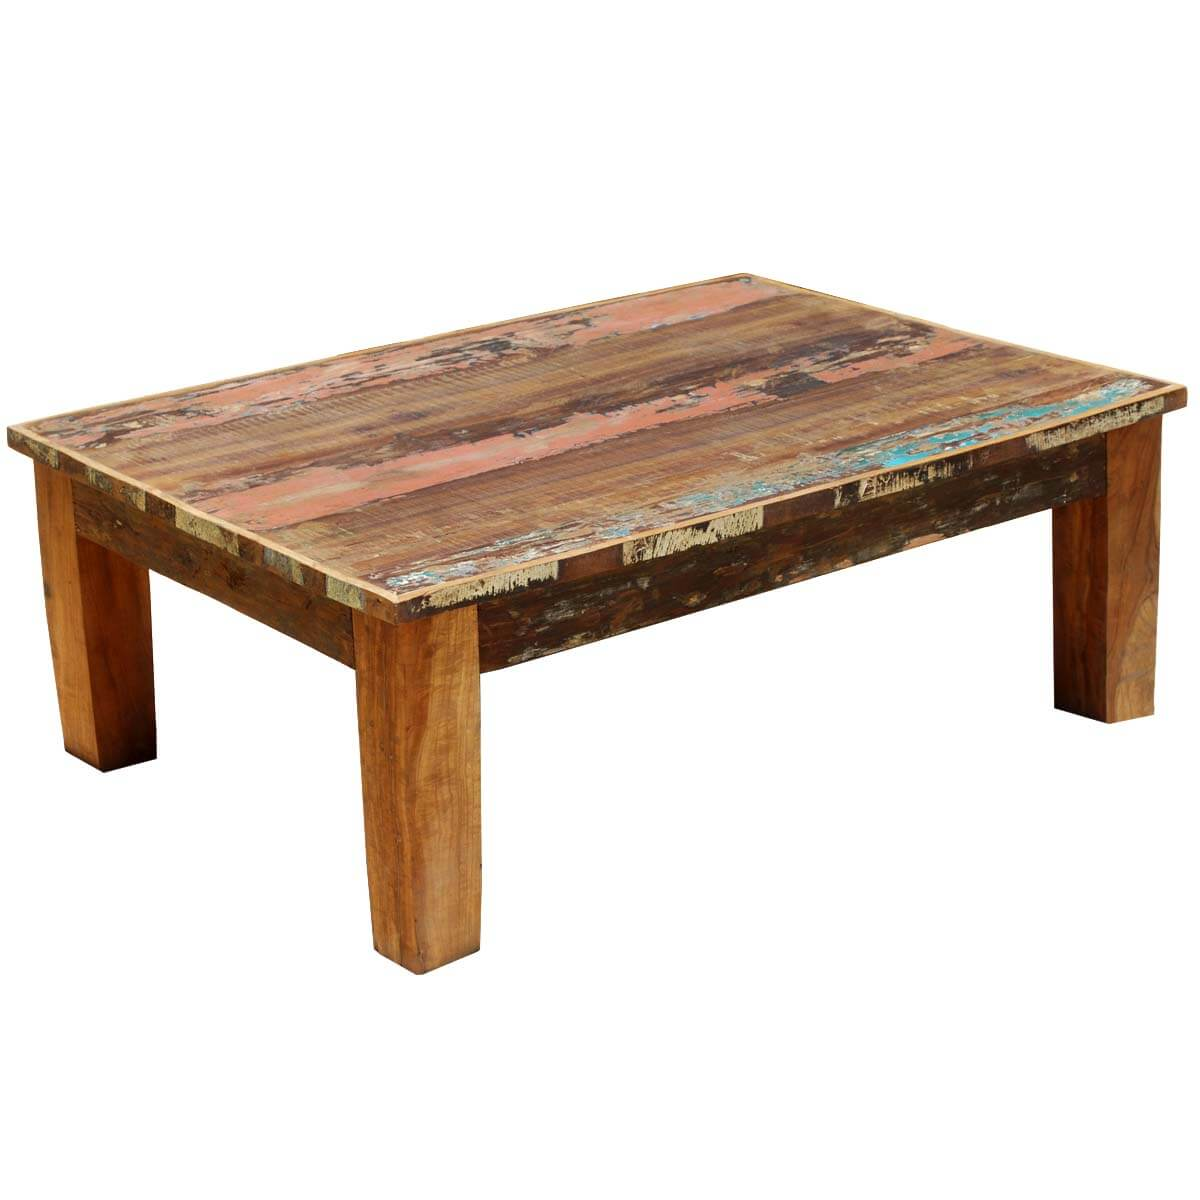 Living Room Appalachian Rustic Mixed Reclaimed Wood Coffee Table